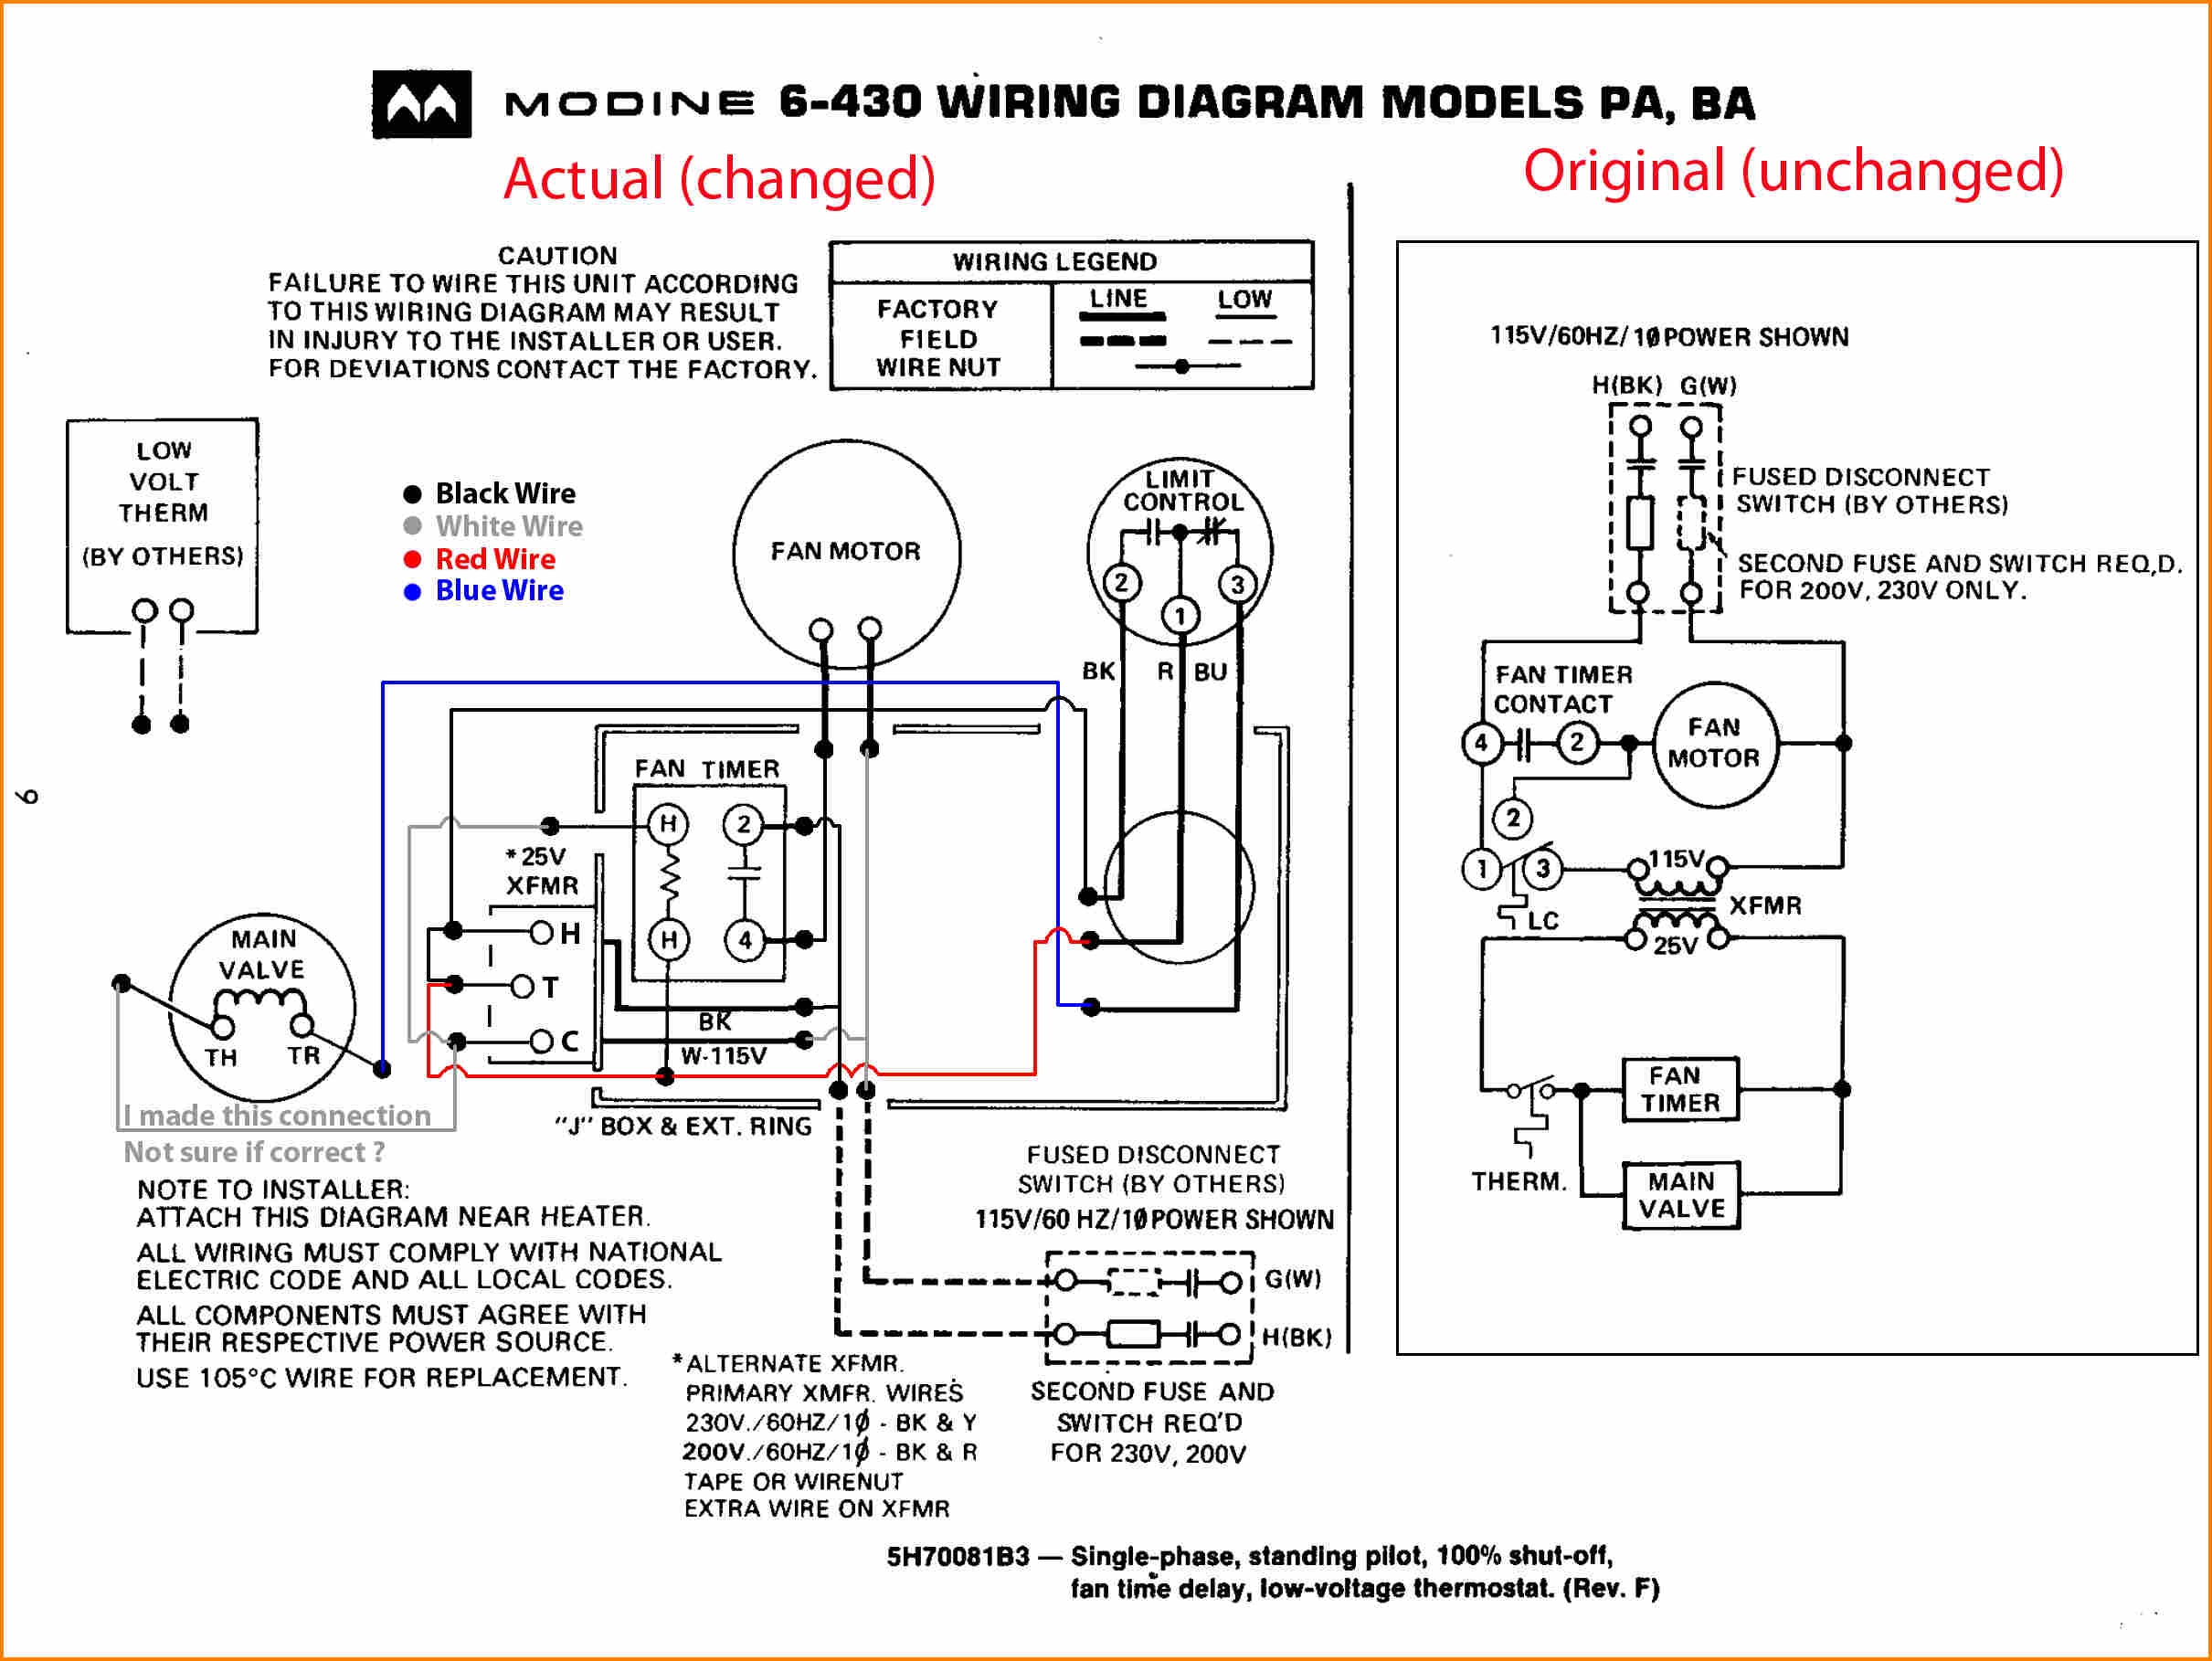 Ge Furnace Blower Motor Wiring Diagram - Ge Furnace Blower Motor Wiring Diagram Ge Furnace Blower Motor Wiring Diagram Goodman Electric Furnace 3n